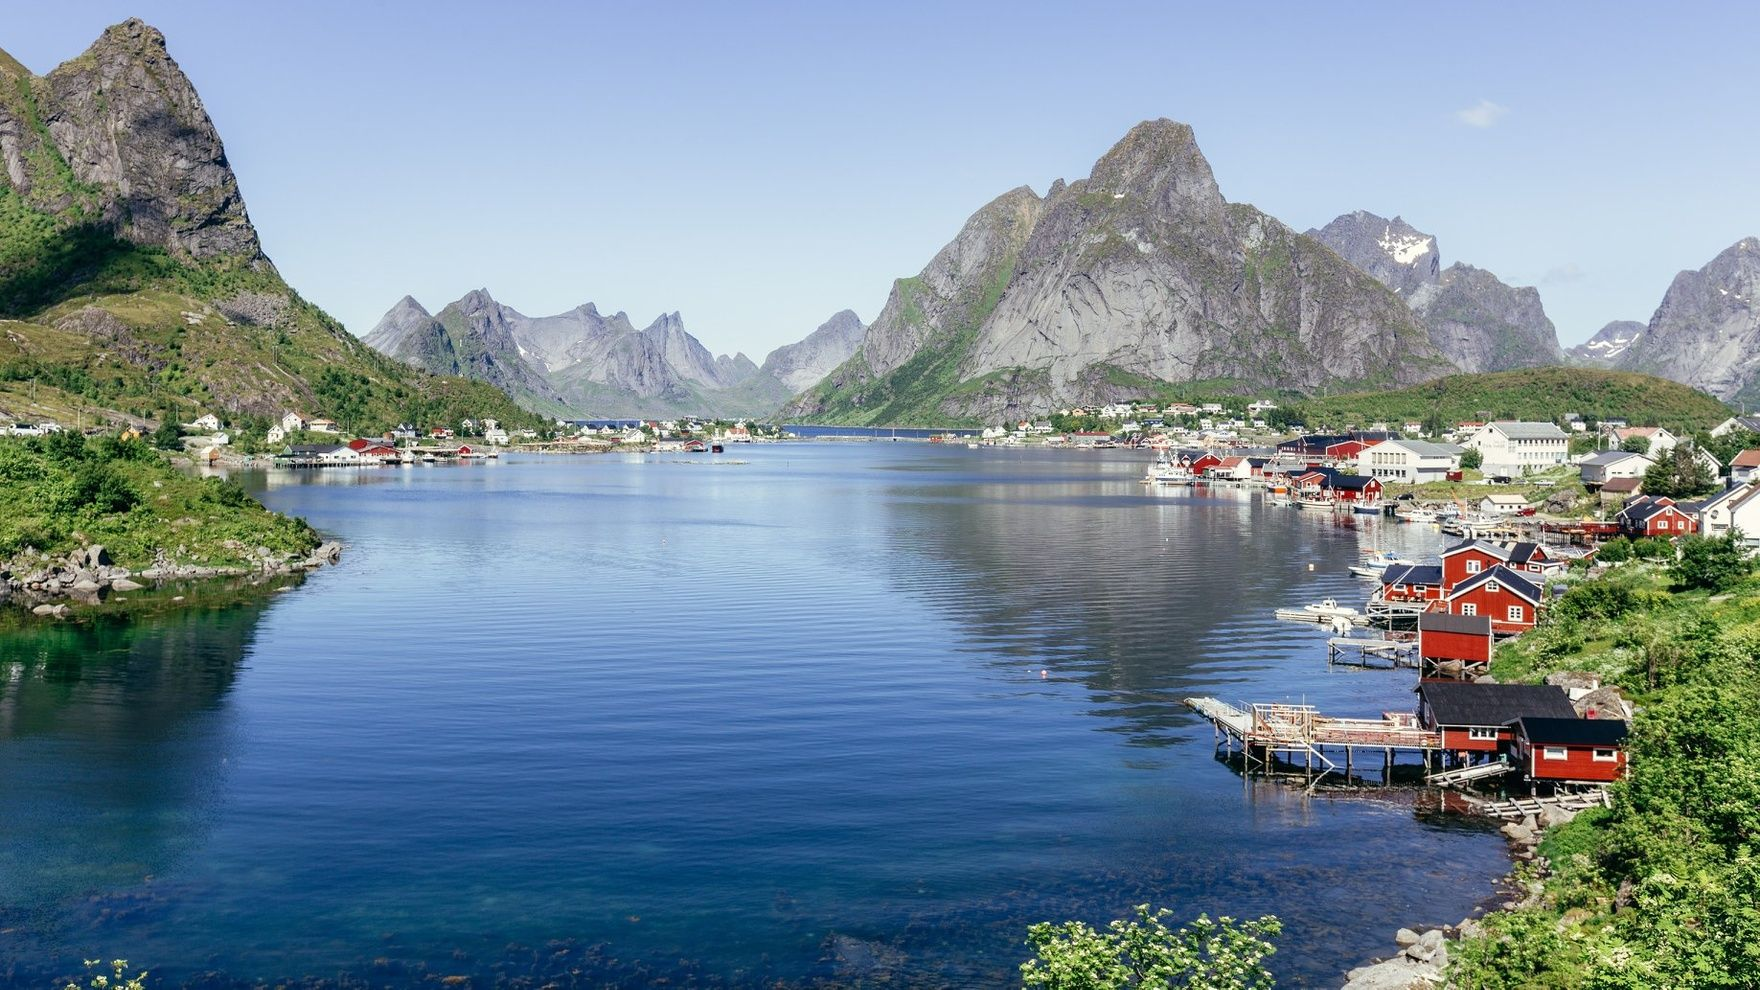 Sailing expedition to the Lofoten Islands